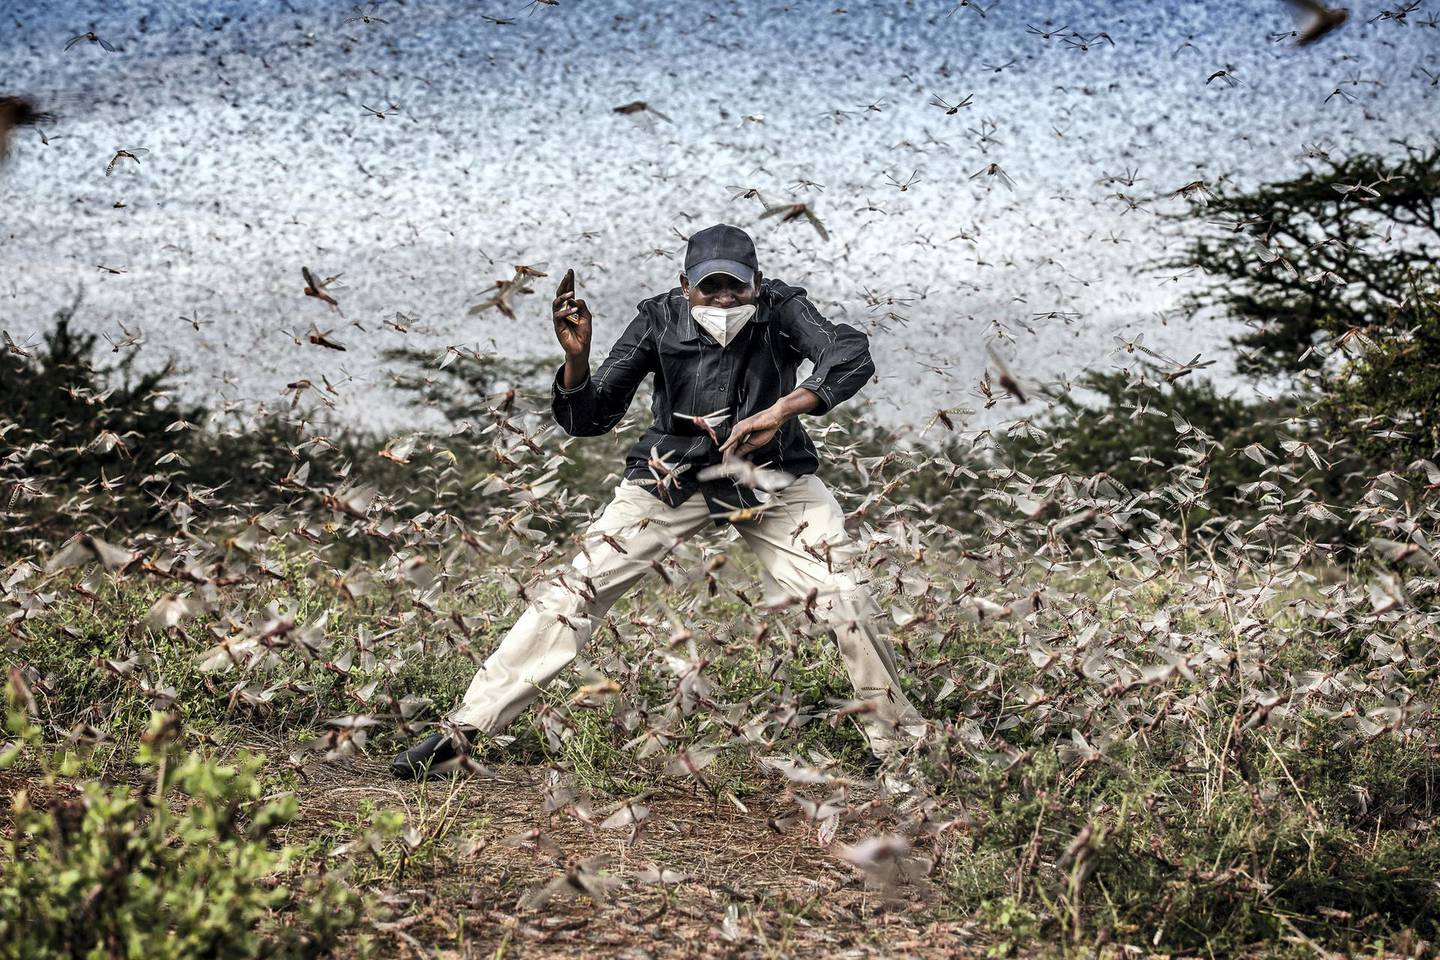 """Herny Lenayasa, a Samburu man and chief of the settlement of Archers Post tries to scare away a massive swarm of locust ravaging an area next to Archers Post, Samburu County, Kenya on April 24, 2020.A locust plague fueled by unpredictable weather patterns up to 20 times larger than a wave two months earlier is threatening to devastate parts of East Africa. Locust has made already a devastating appearance in Kenya, two months aftervoracious swarms -some billions strong- ravaged big areas of land and just as the coronavirus outbreak has begun to disrupt livelihoods. In spite of coronavirus-related travel restrictions, international experts are in place to support efforts to eradicate the pest with measures including ground and aerial spraying.The Covid-19 pandemic has competed for funding, hampered movement and delayed the import of some inputs, including insecticides and pesticides.The UN Food and Agriculture Organisation (FAO) has called the locust outbreak, caused in part by climate change, """"an unprecedented threat"""" to food security and livelihoods. Its officials have called this new wave some 20 times the size of the first.Photo: Luis Tato for The Washington Post"""